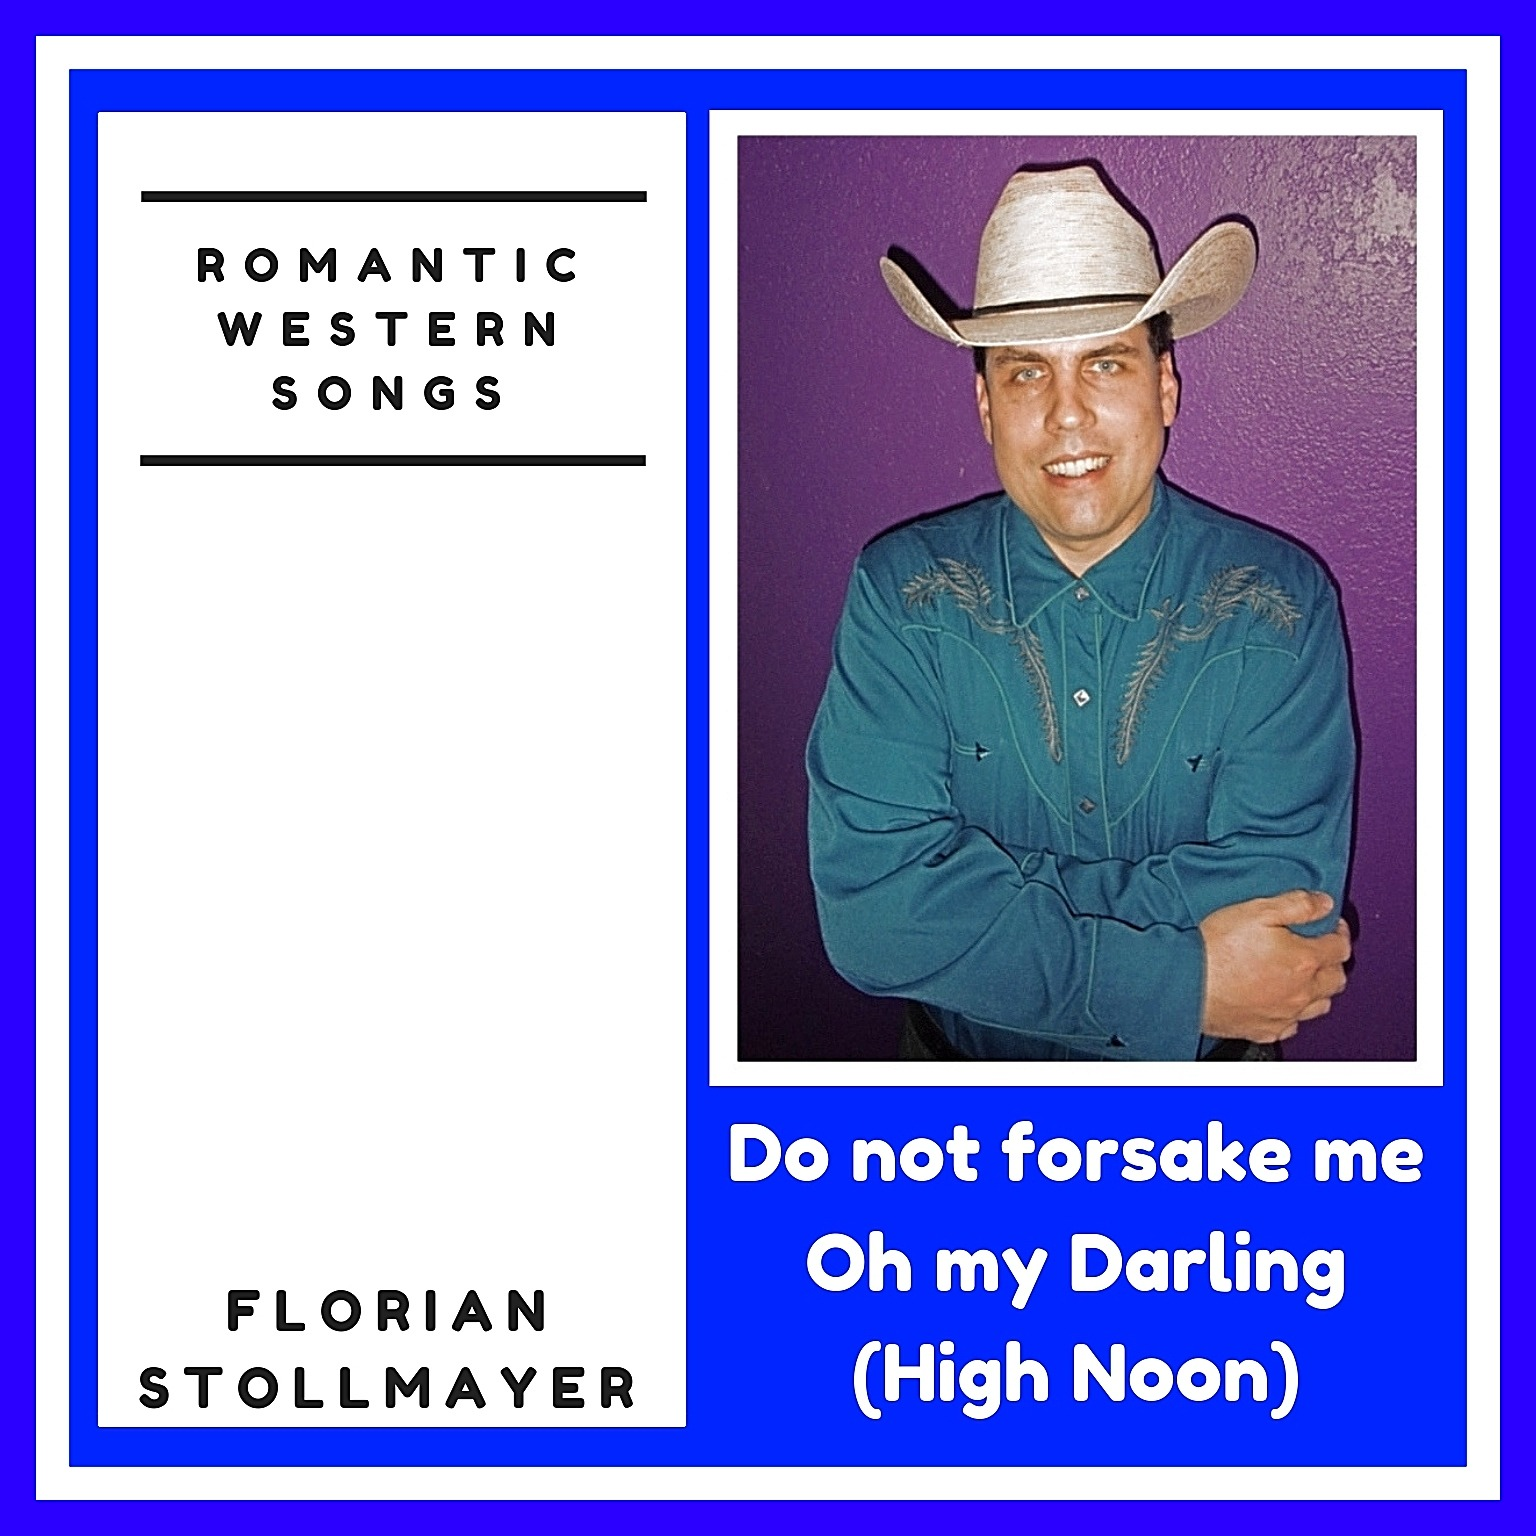 Do not forsake me Oh my Darling (High Noon) by Florian Stollmayer